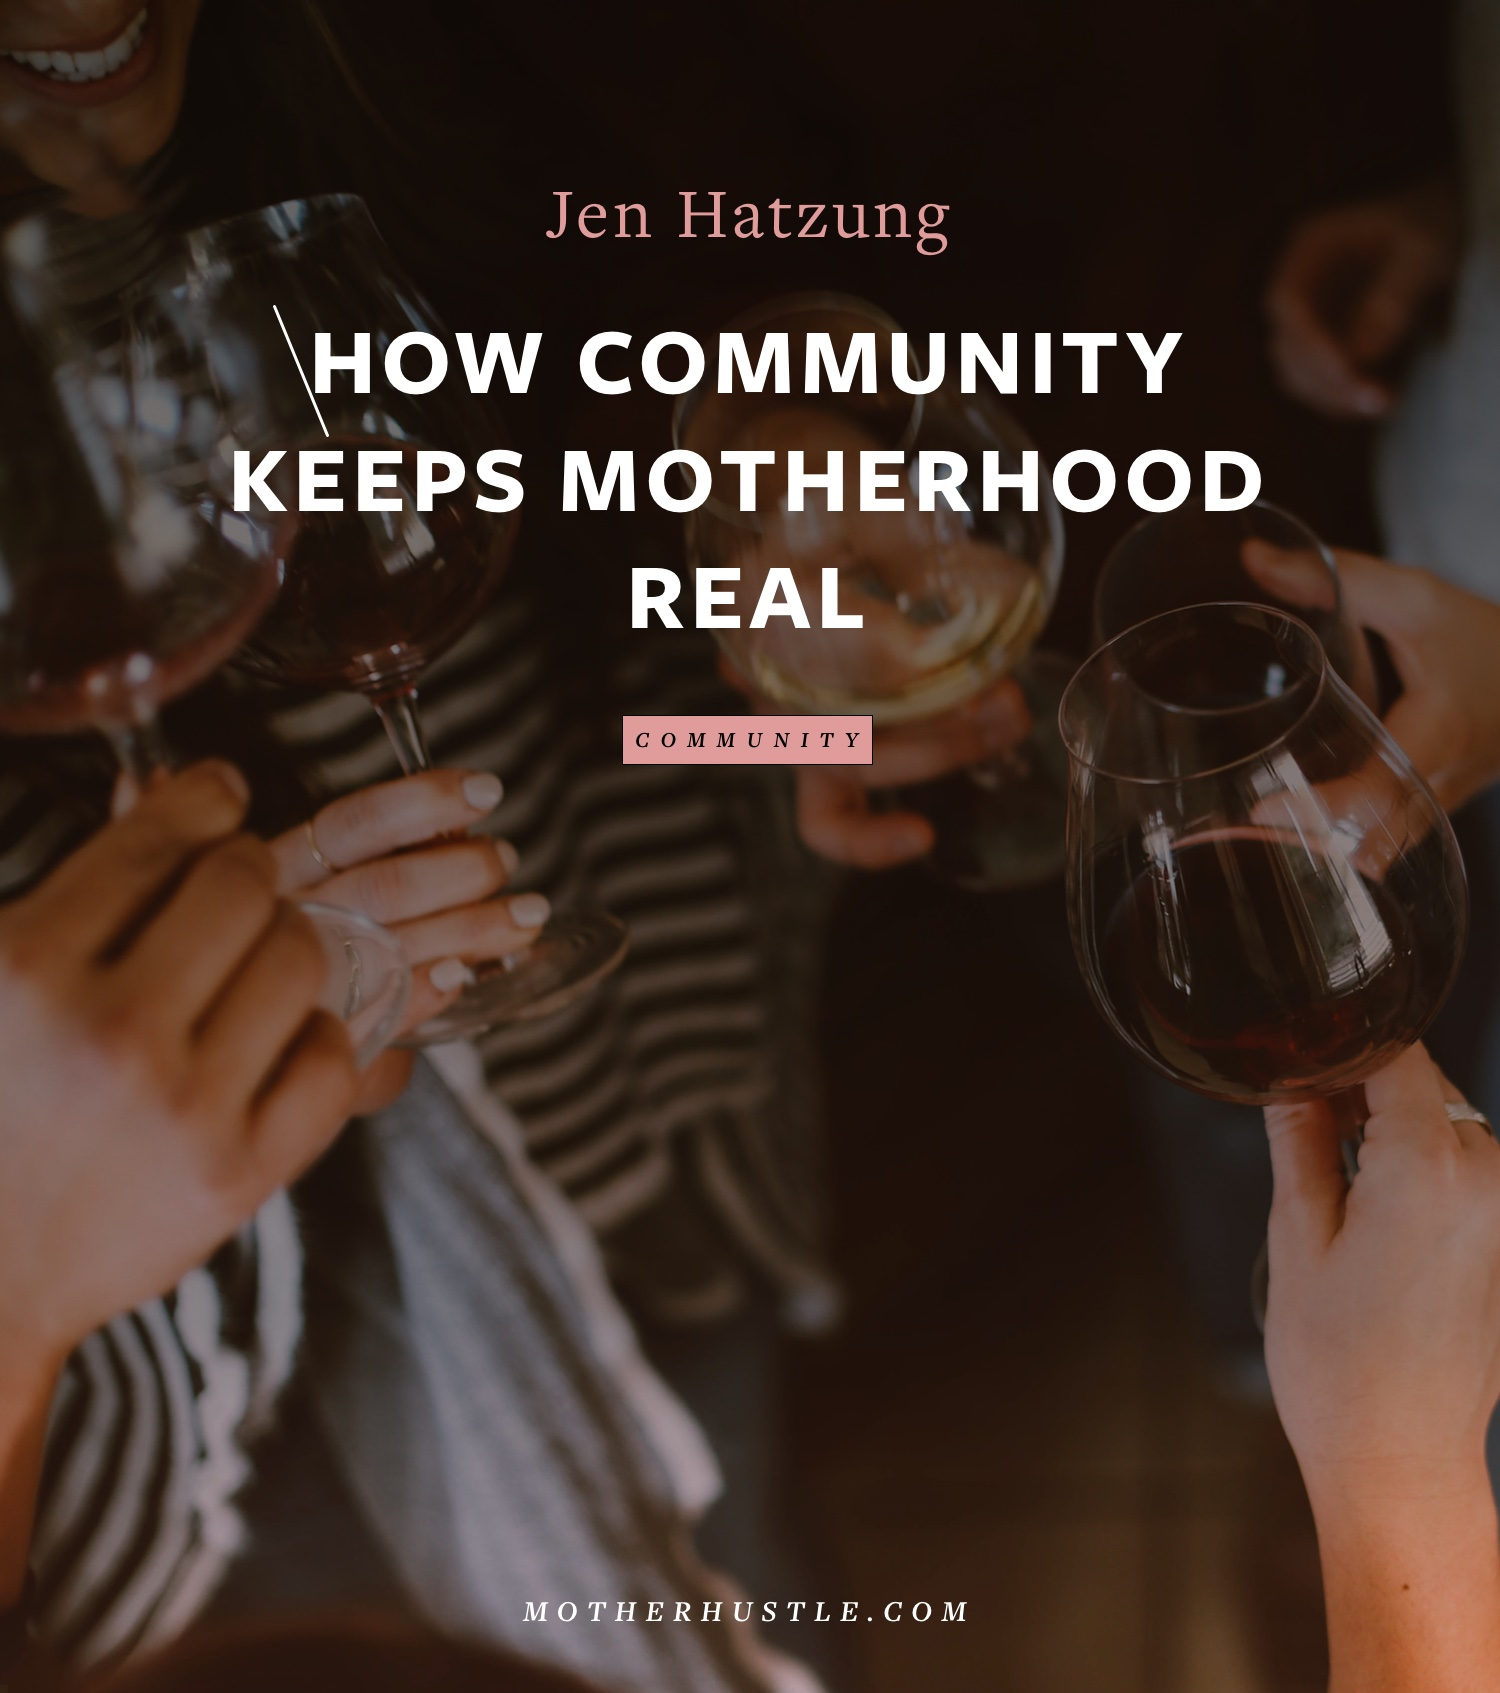 How Community Keeps Motherhood Real - by Jen Hatzung for MotherHustle